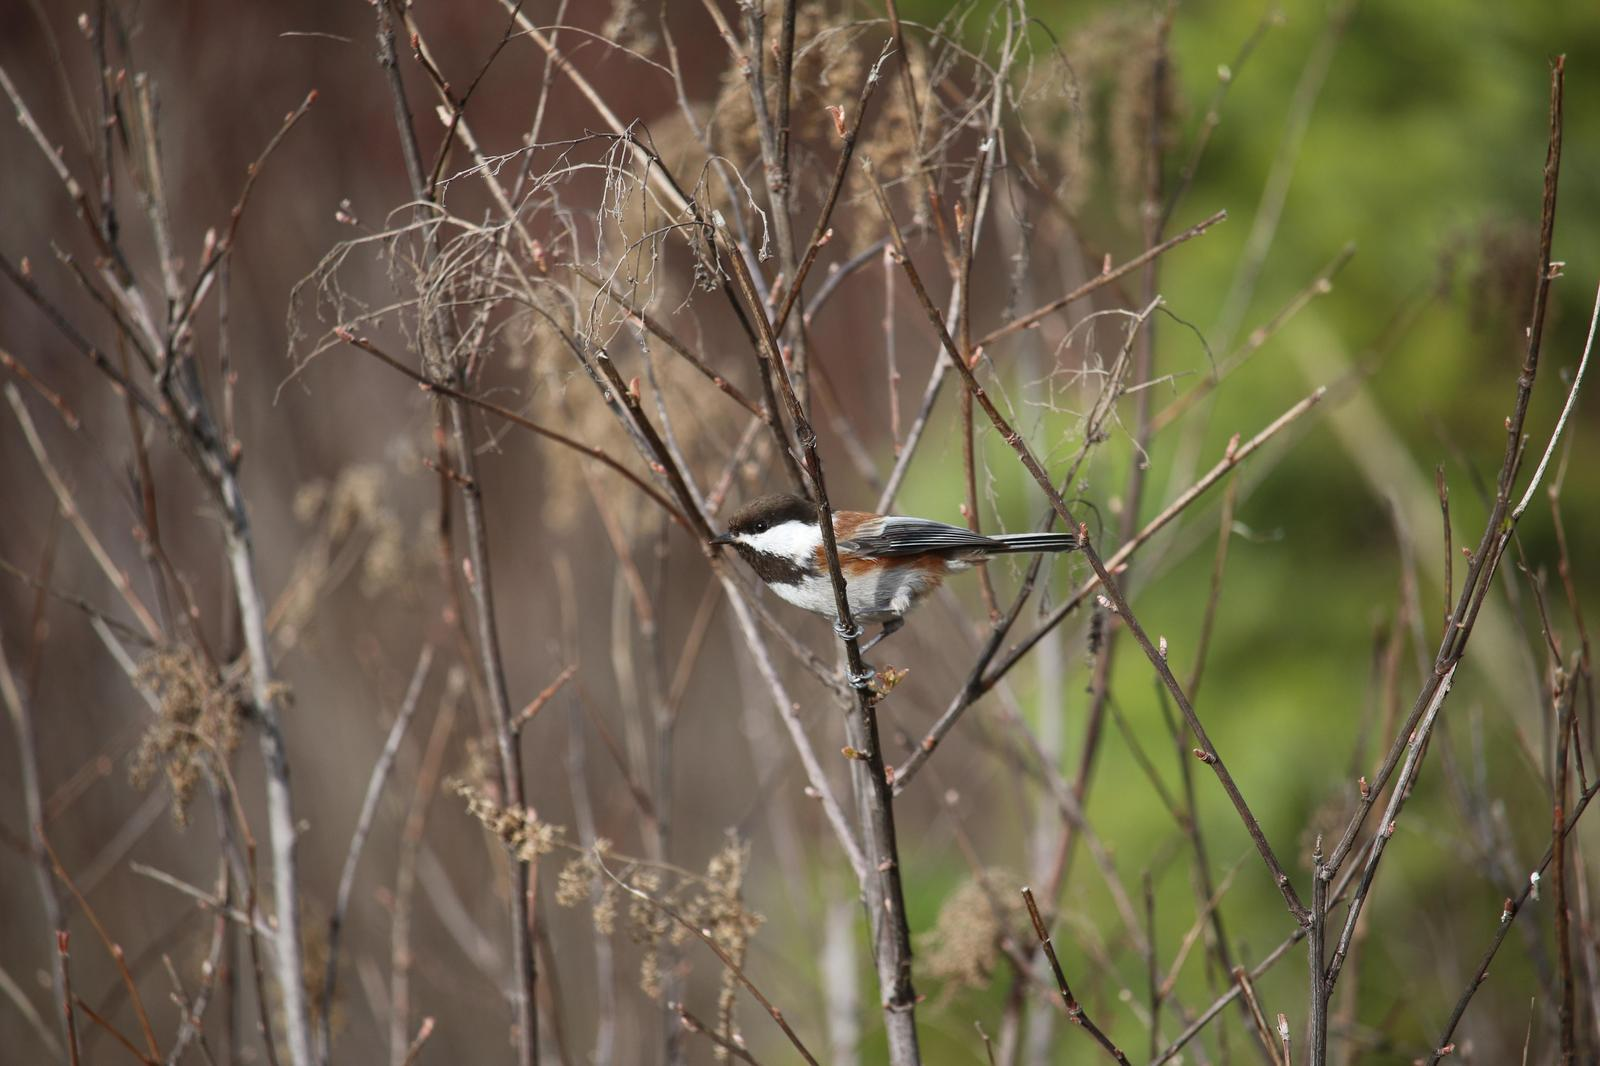 Chestnut-backed Chickadee Photo by Roblyn Brown